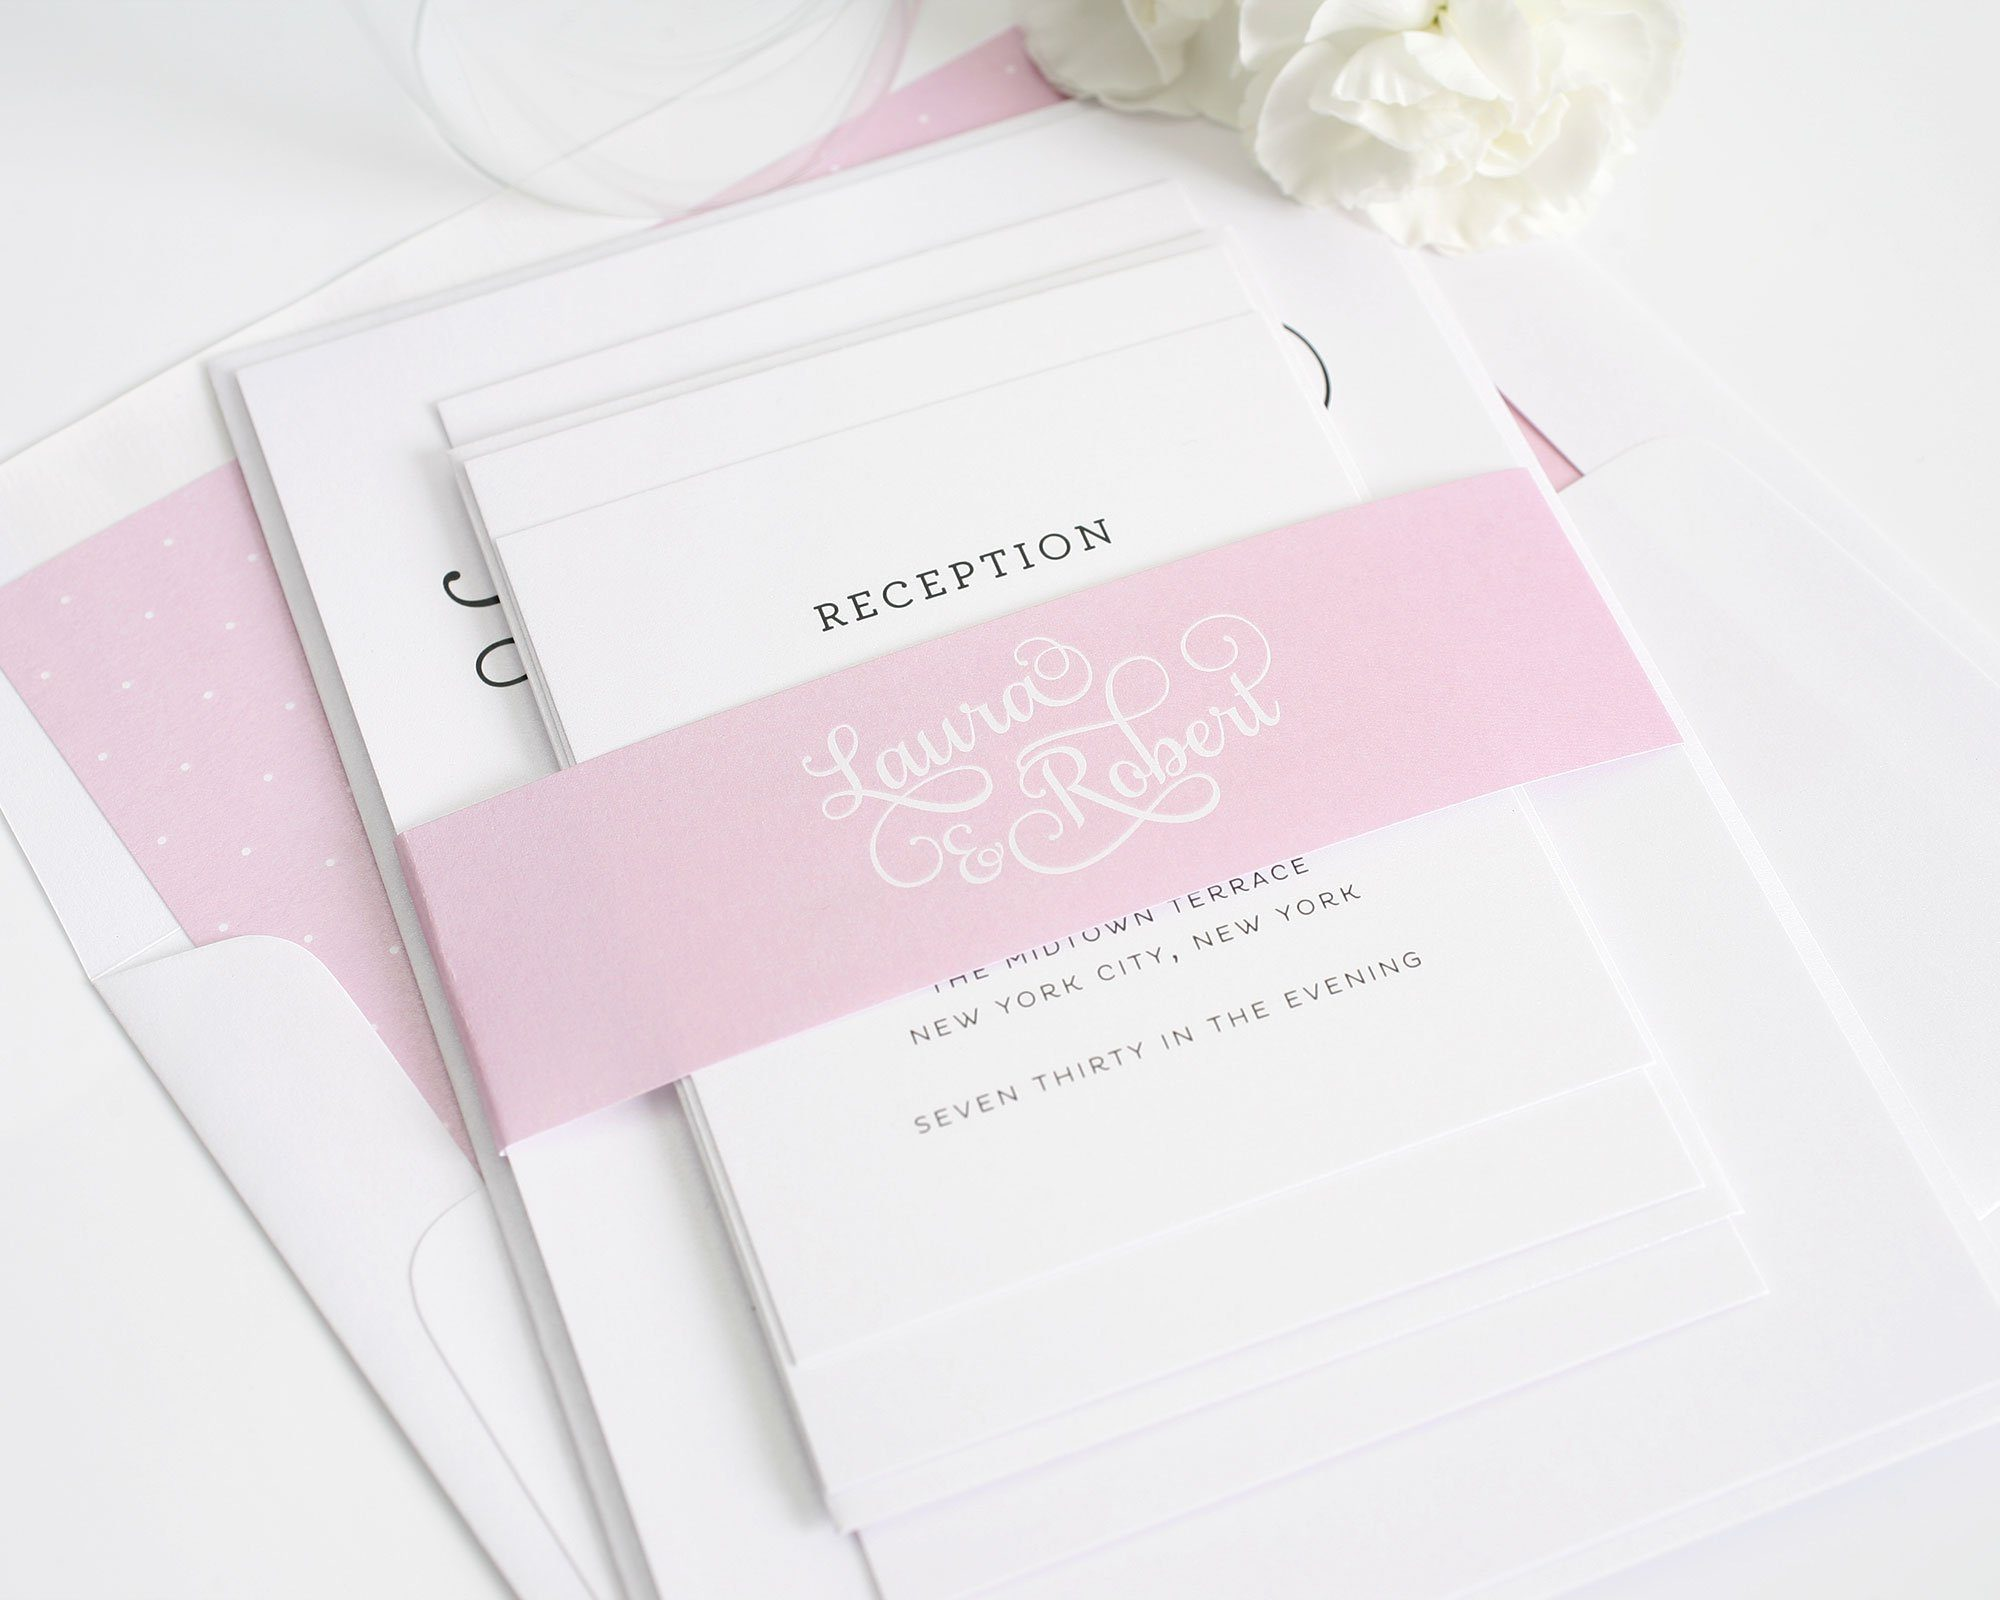 Sweet and romantic wedding invitations with large script wedding elegant pink wedding invitations monicamarmolfo Image collections